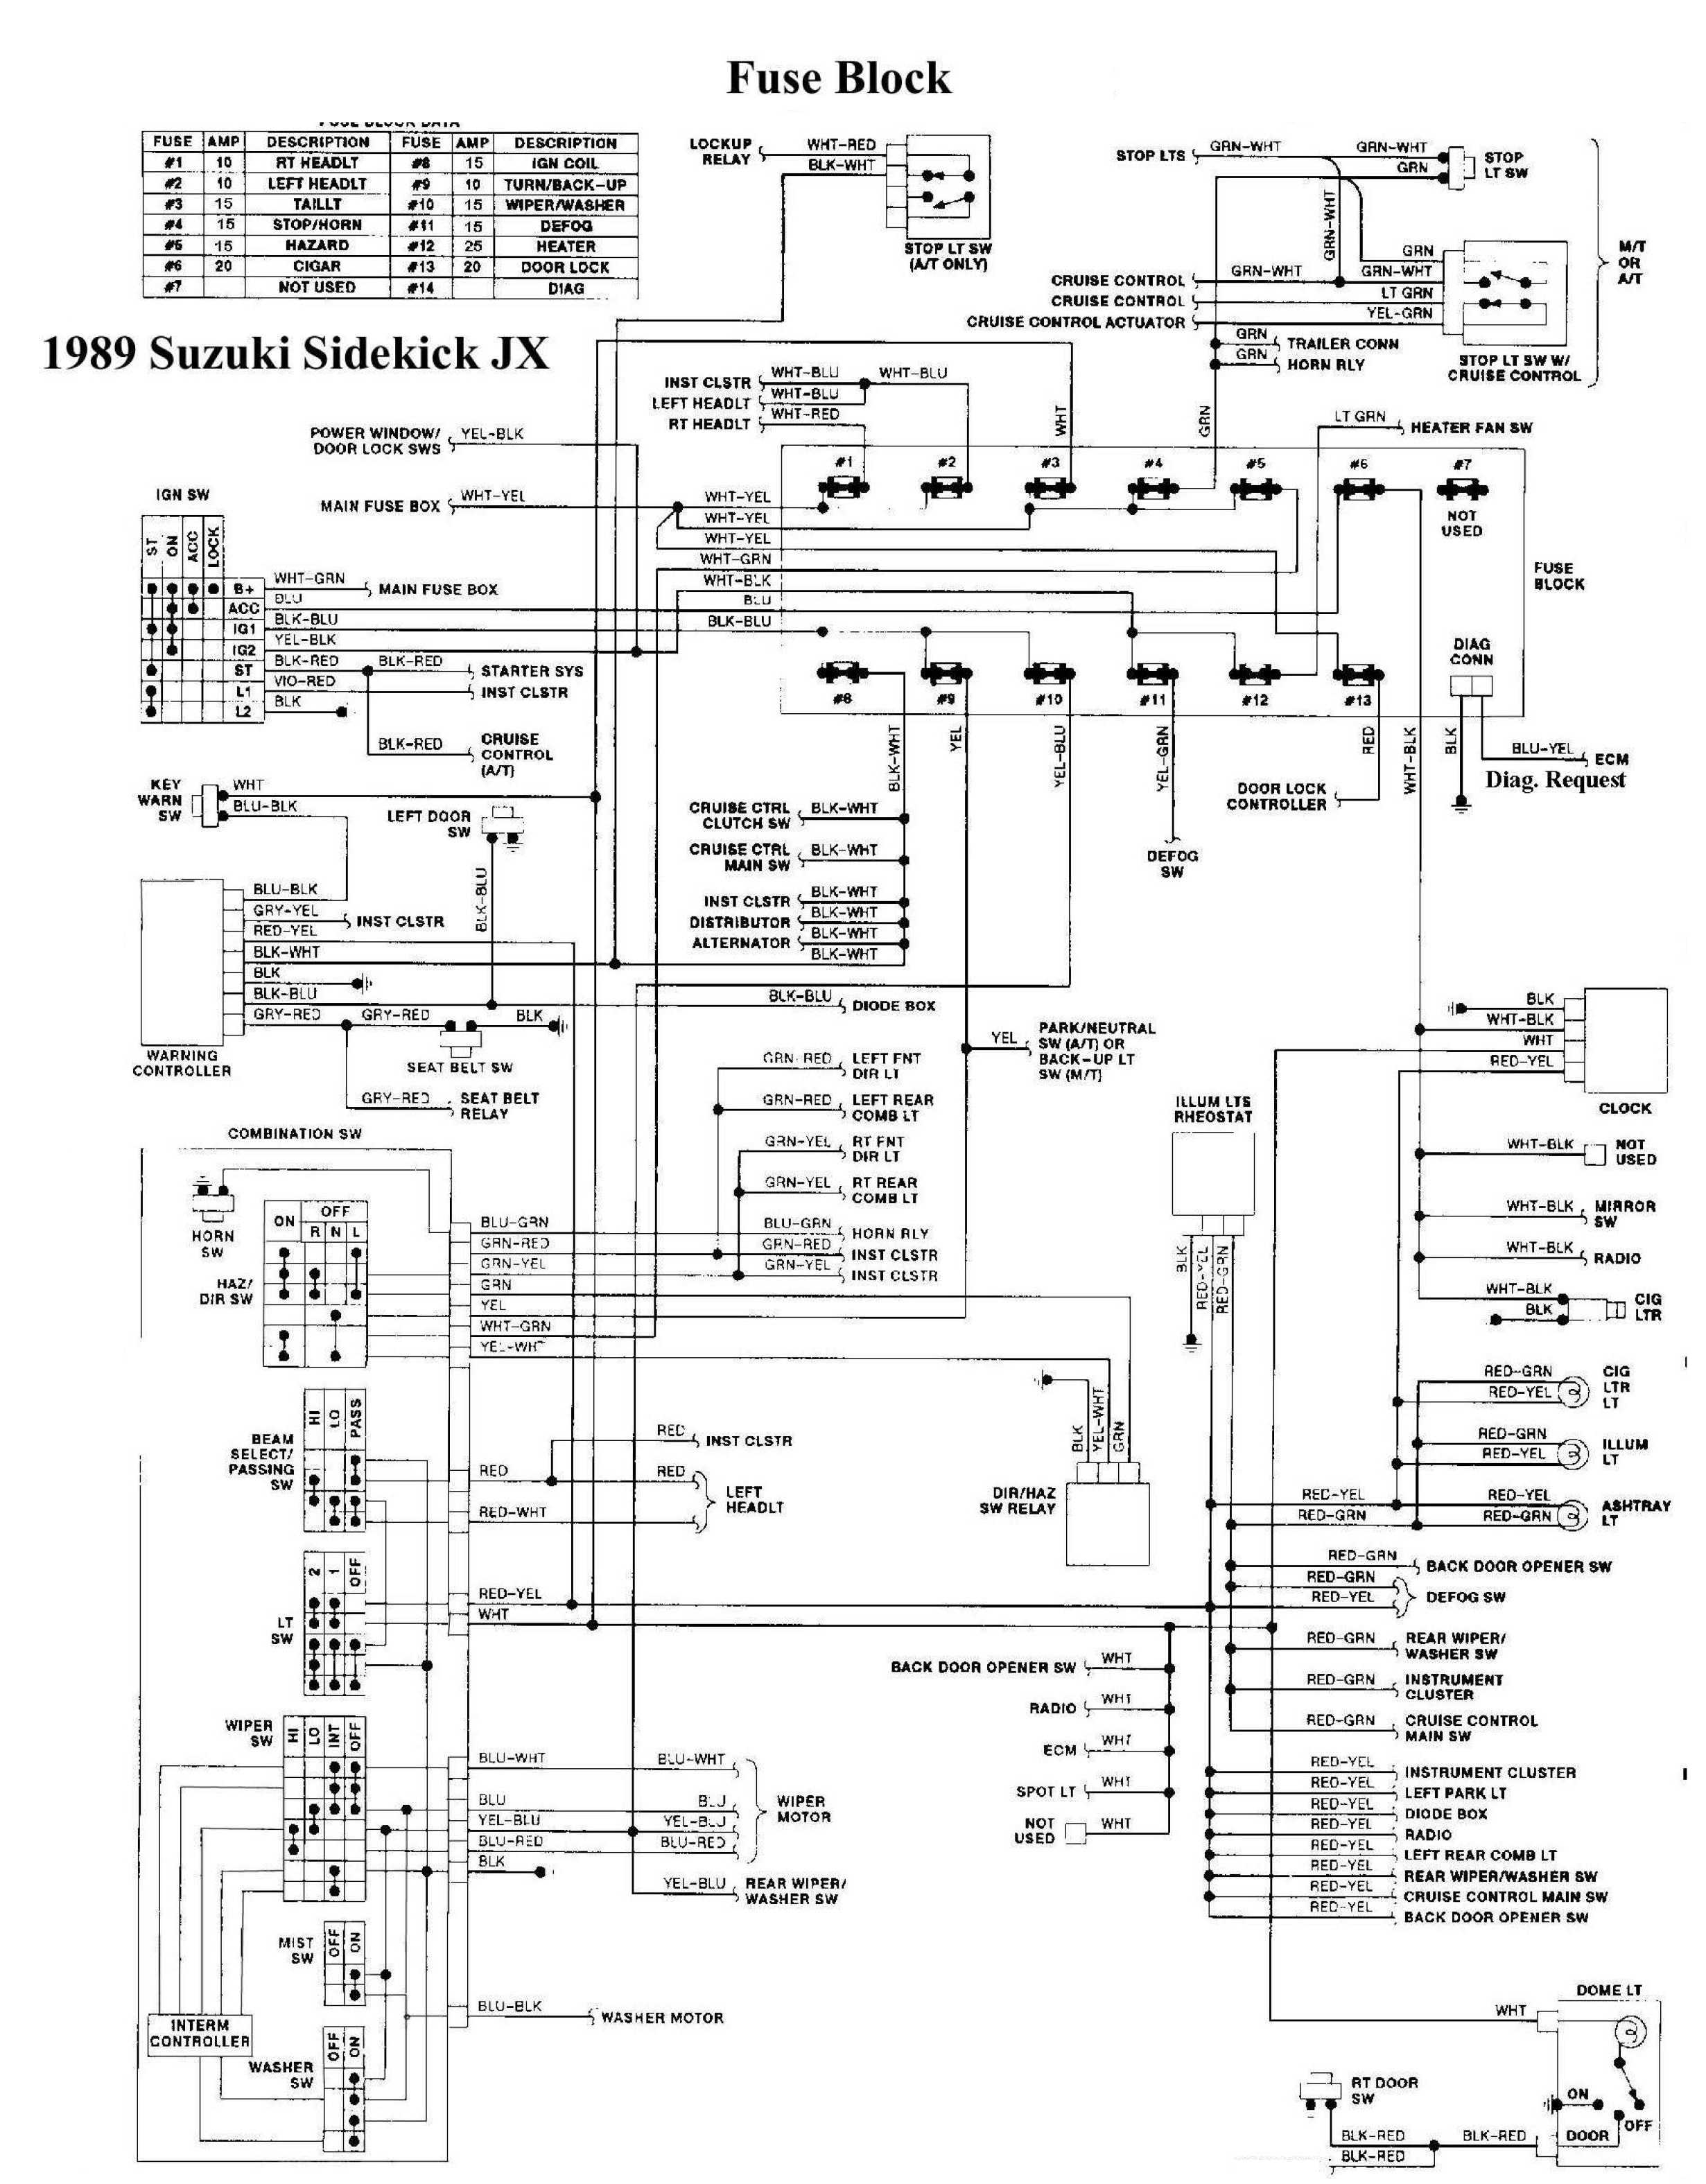 1988 samurai fuse diagram wiring diagram ebook rh c15 canskenderov de